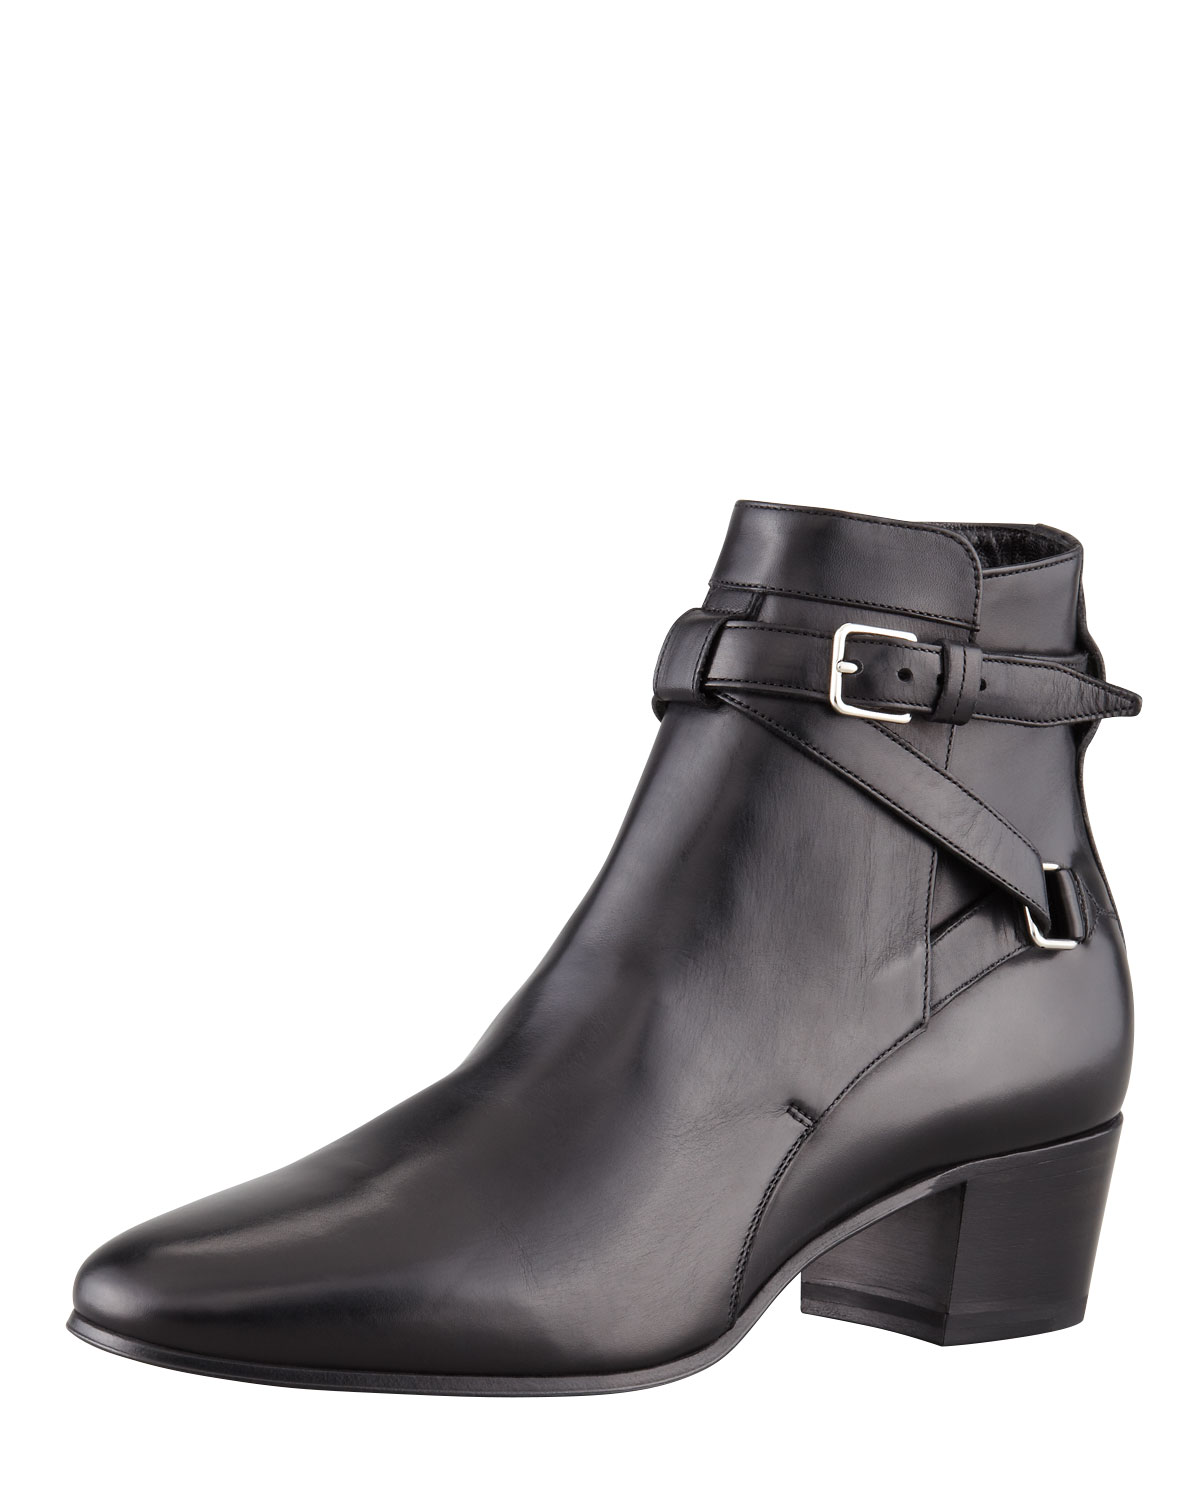 Saint laurent Crisscross Leather Ankle Boot Black in Black | Lyst